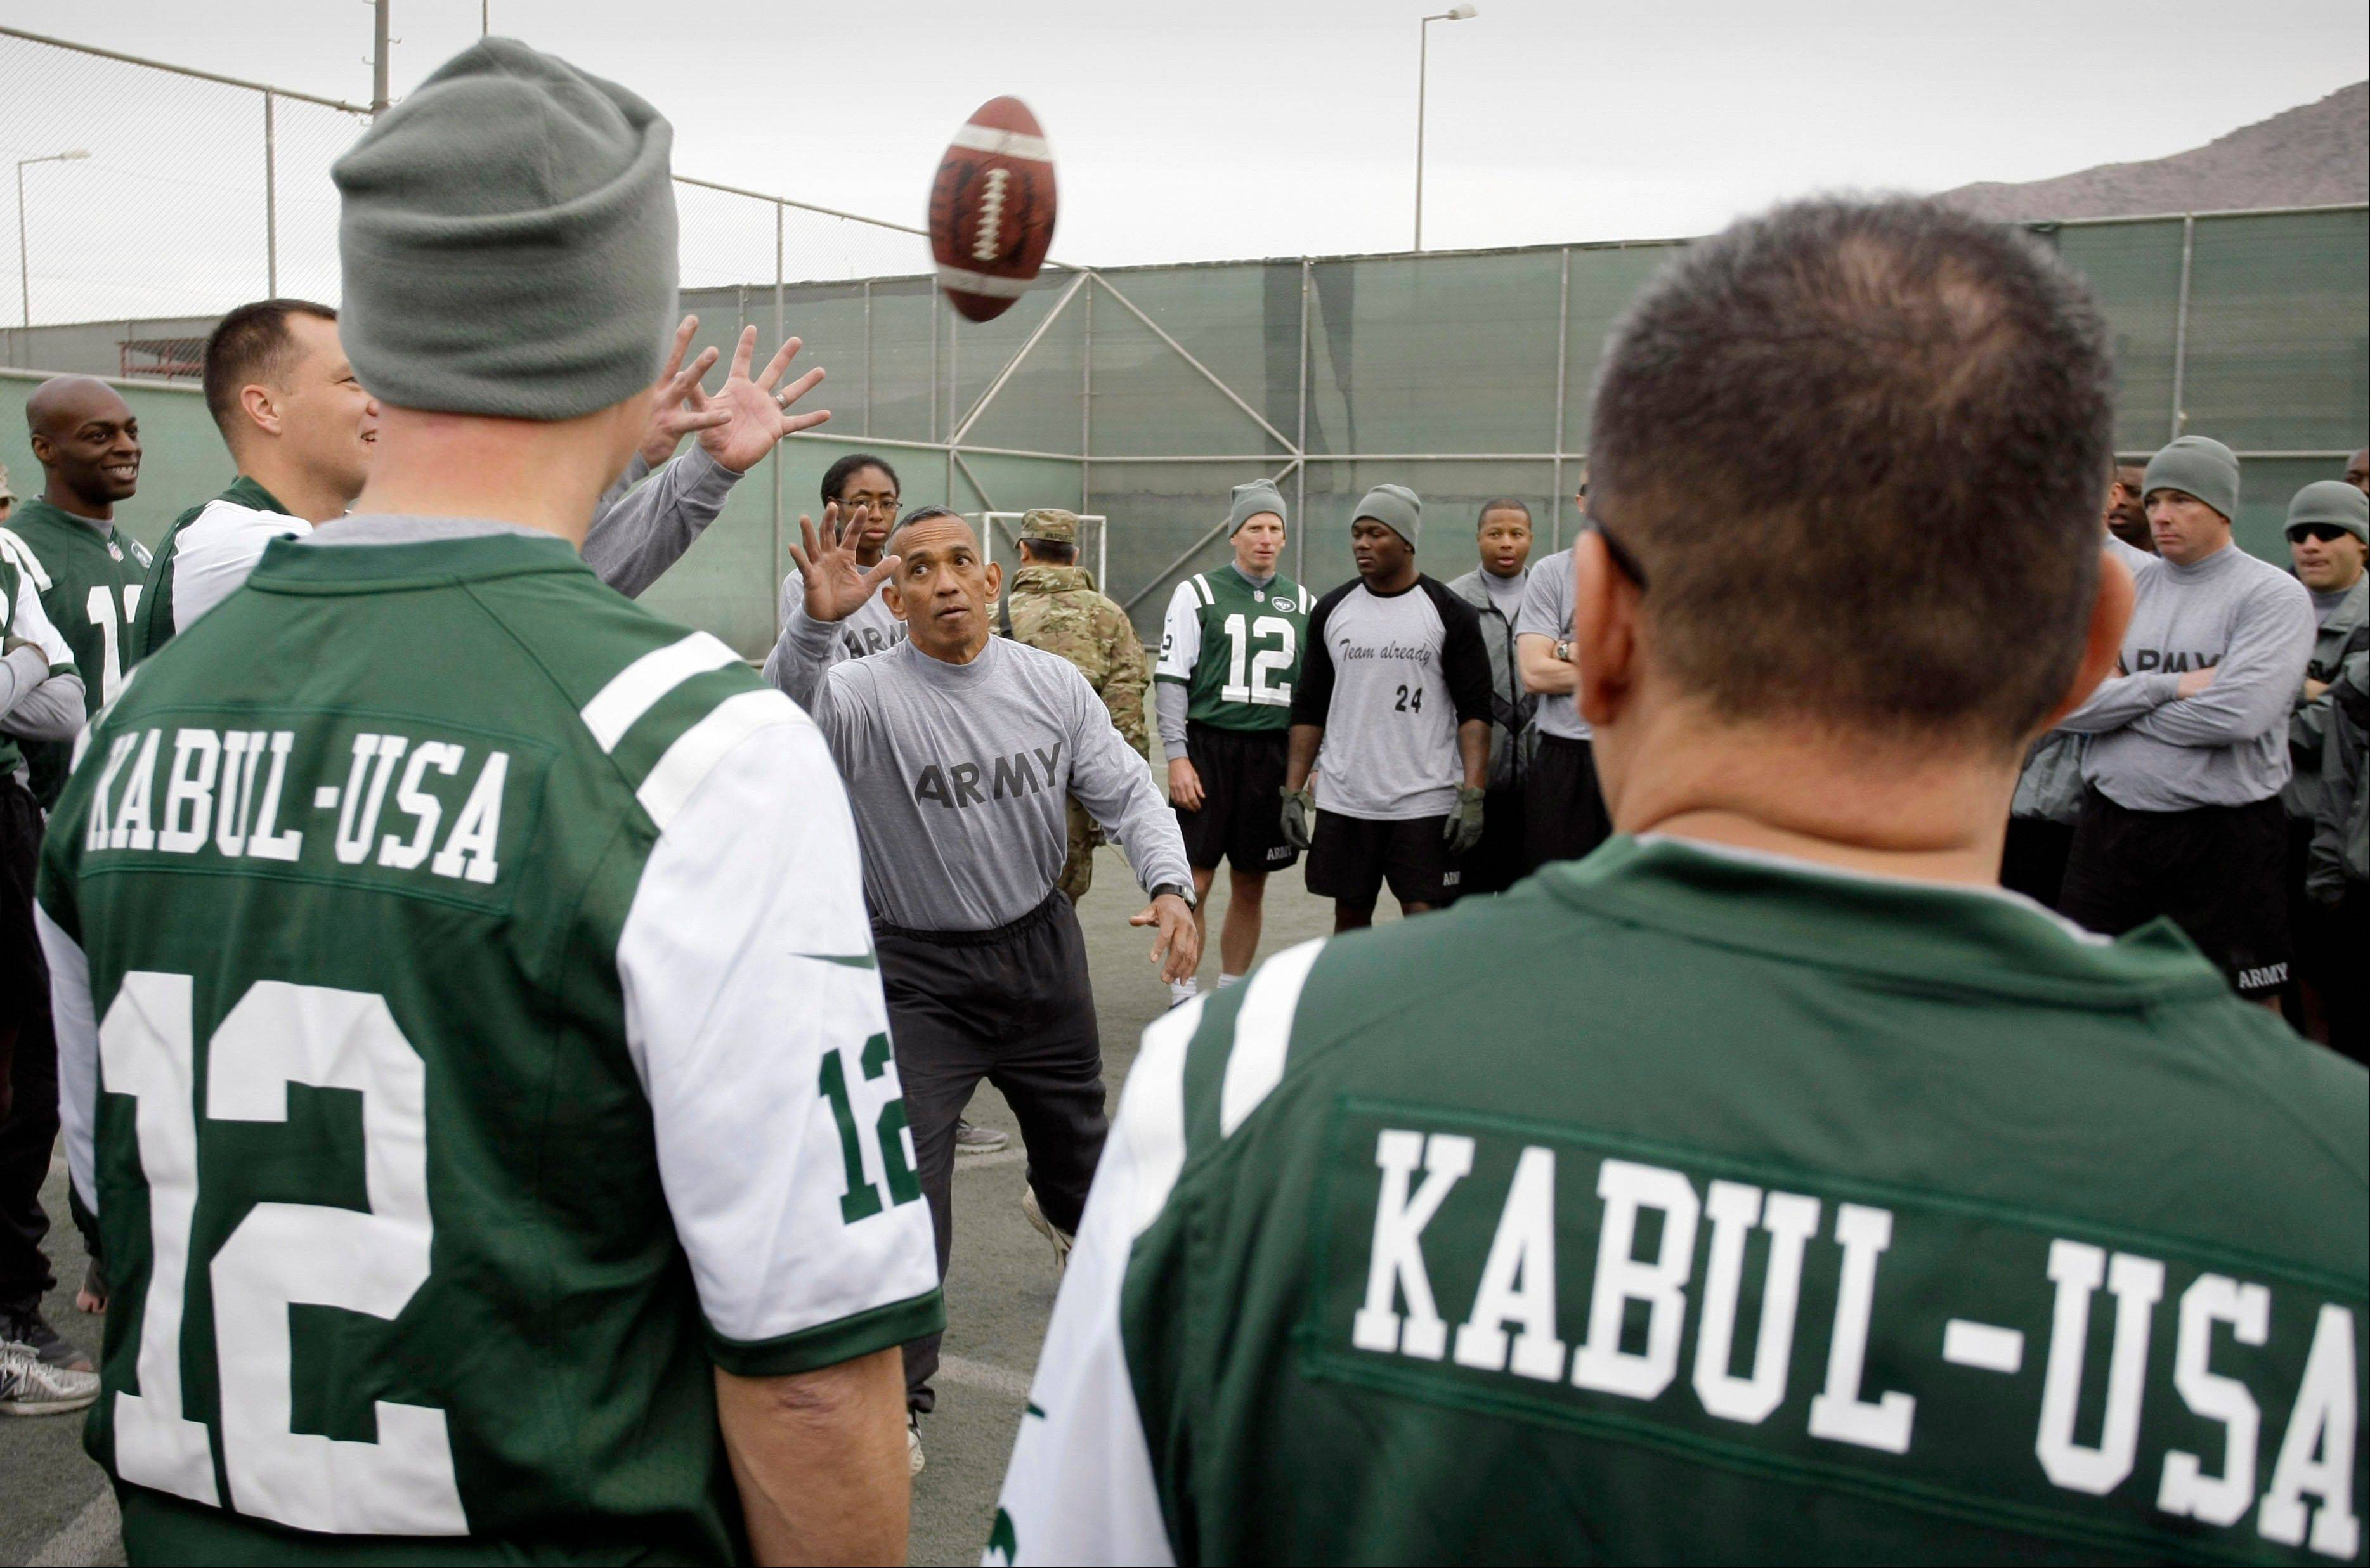 U.S. Army Master Sgt. Wade Manol explains the rules of football to players during a six-team competition to mark Thanksgiving at the U.S.-led coalition base in Kabul, Afghanistan, Thursday, Nov. 22, 2012.